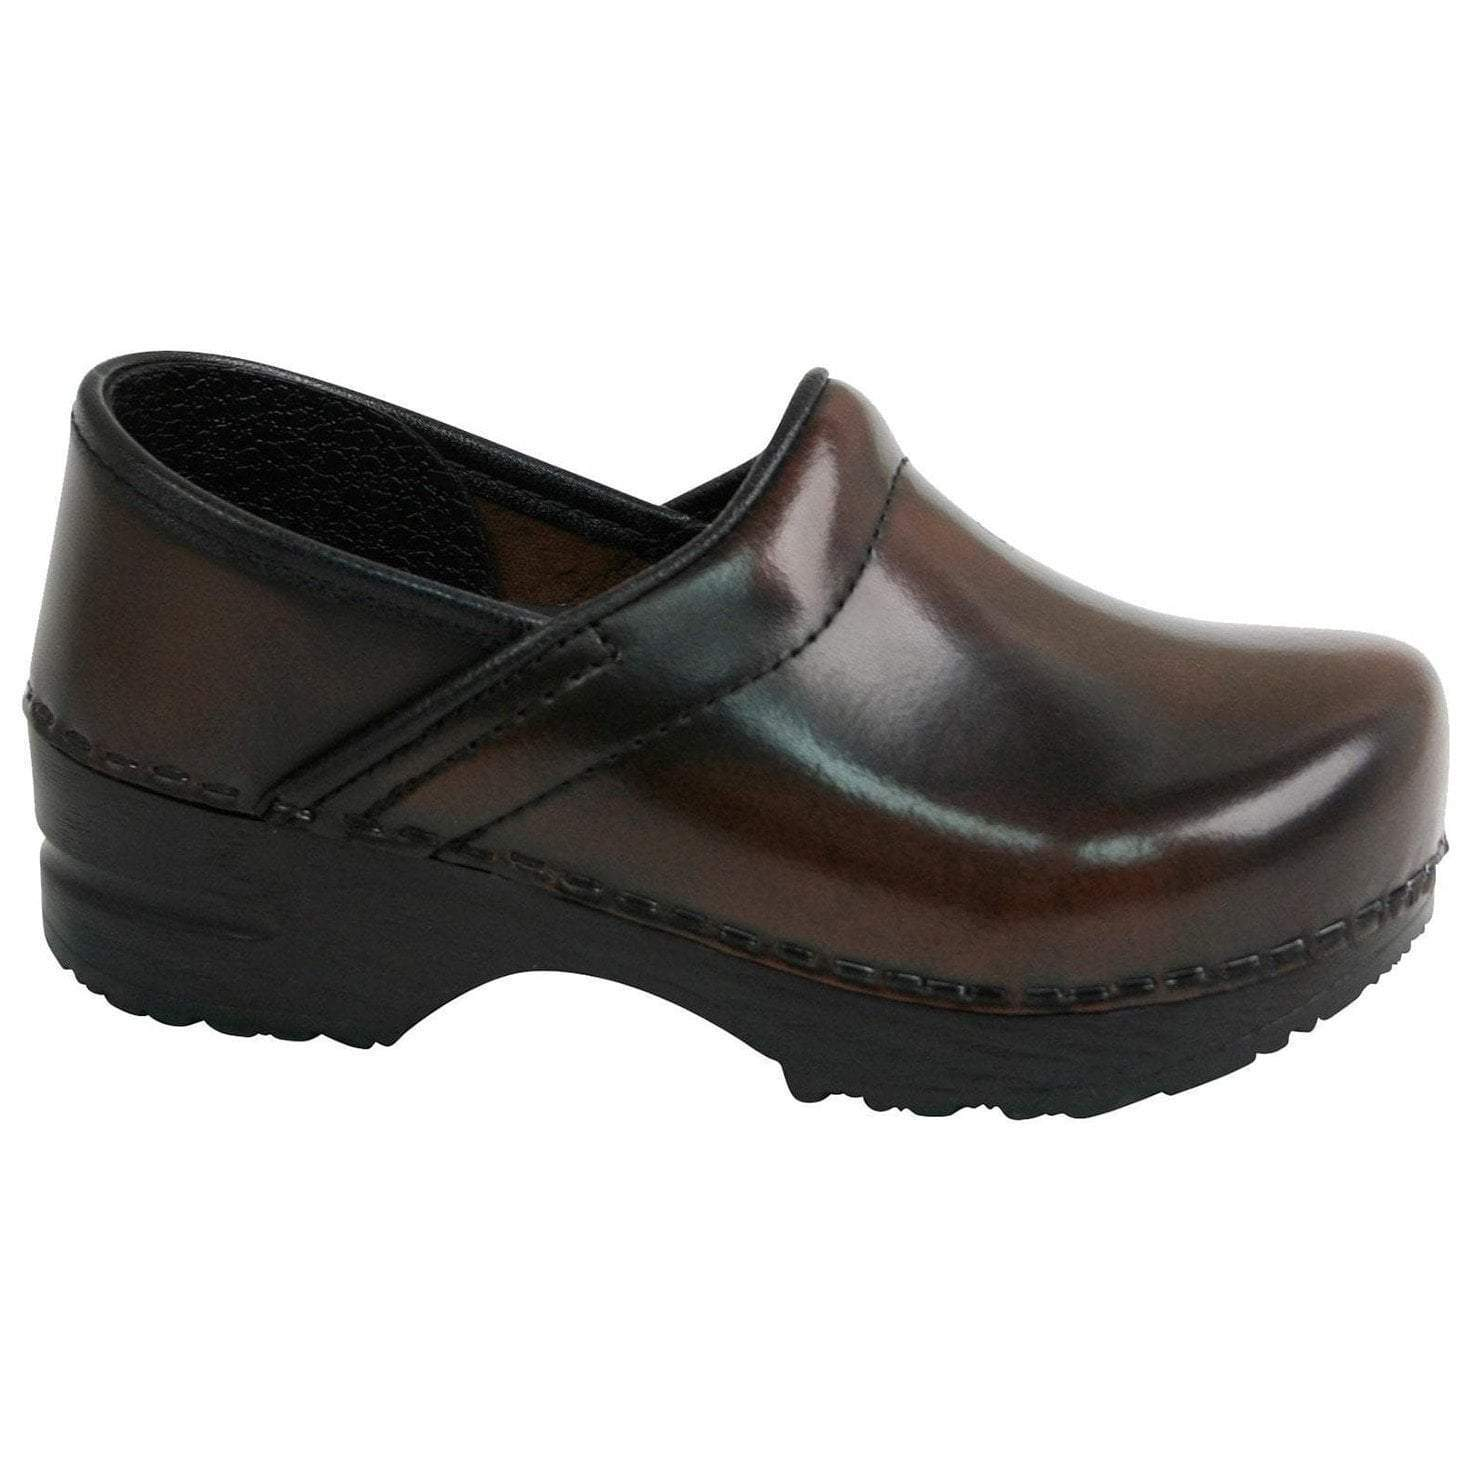 Sanita Gitte Cabrio Kids' Closed Back Clog